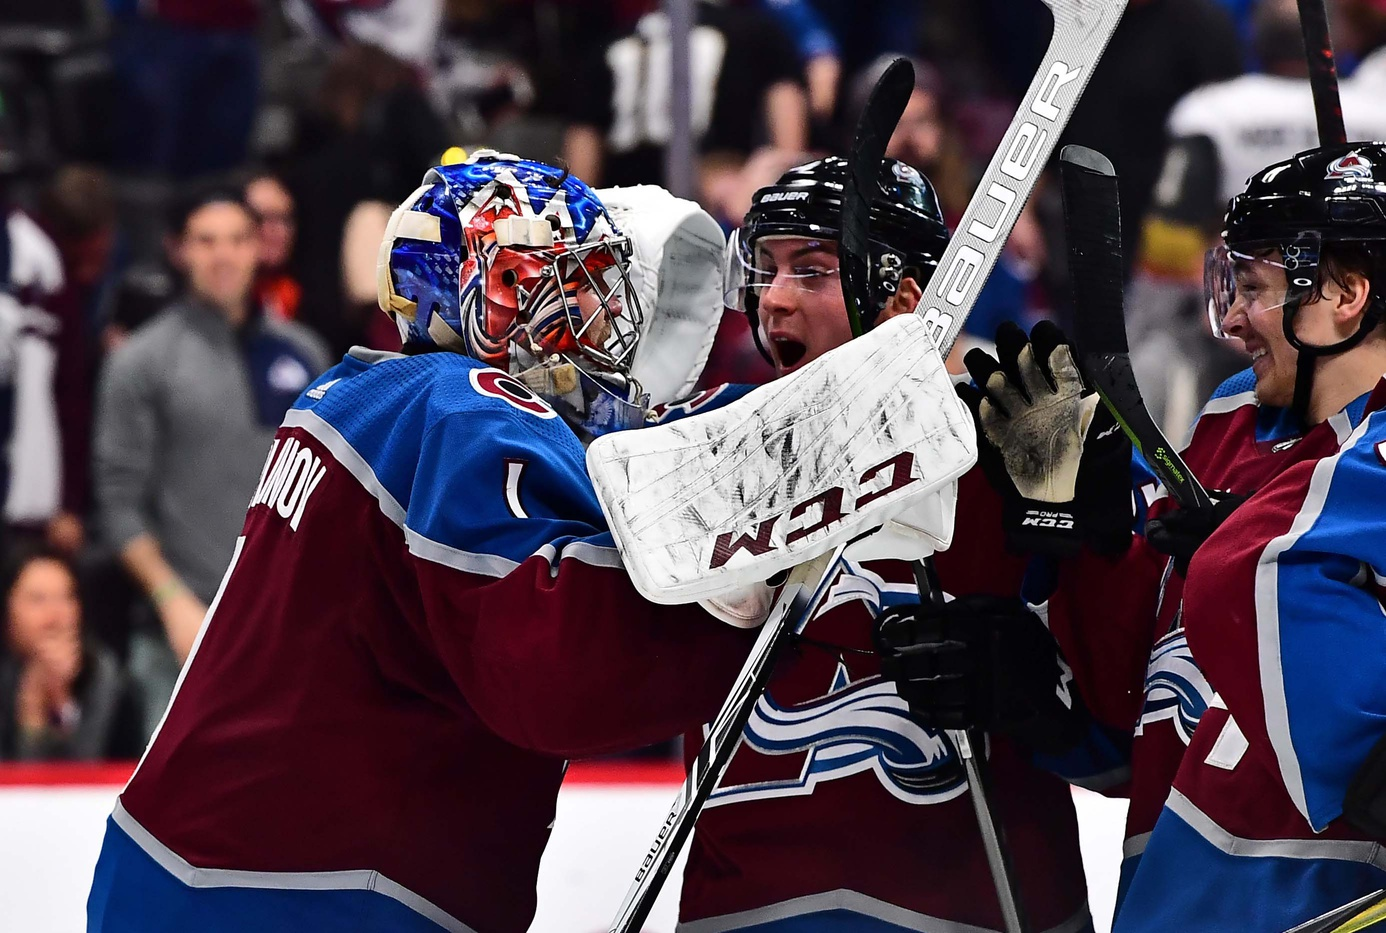 NHL Rumors: St. Louis Blues, LA Kings, Colorado Avalanche and the New York Rangers